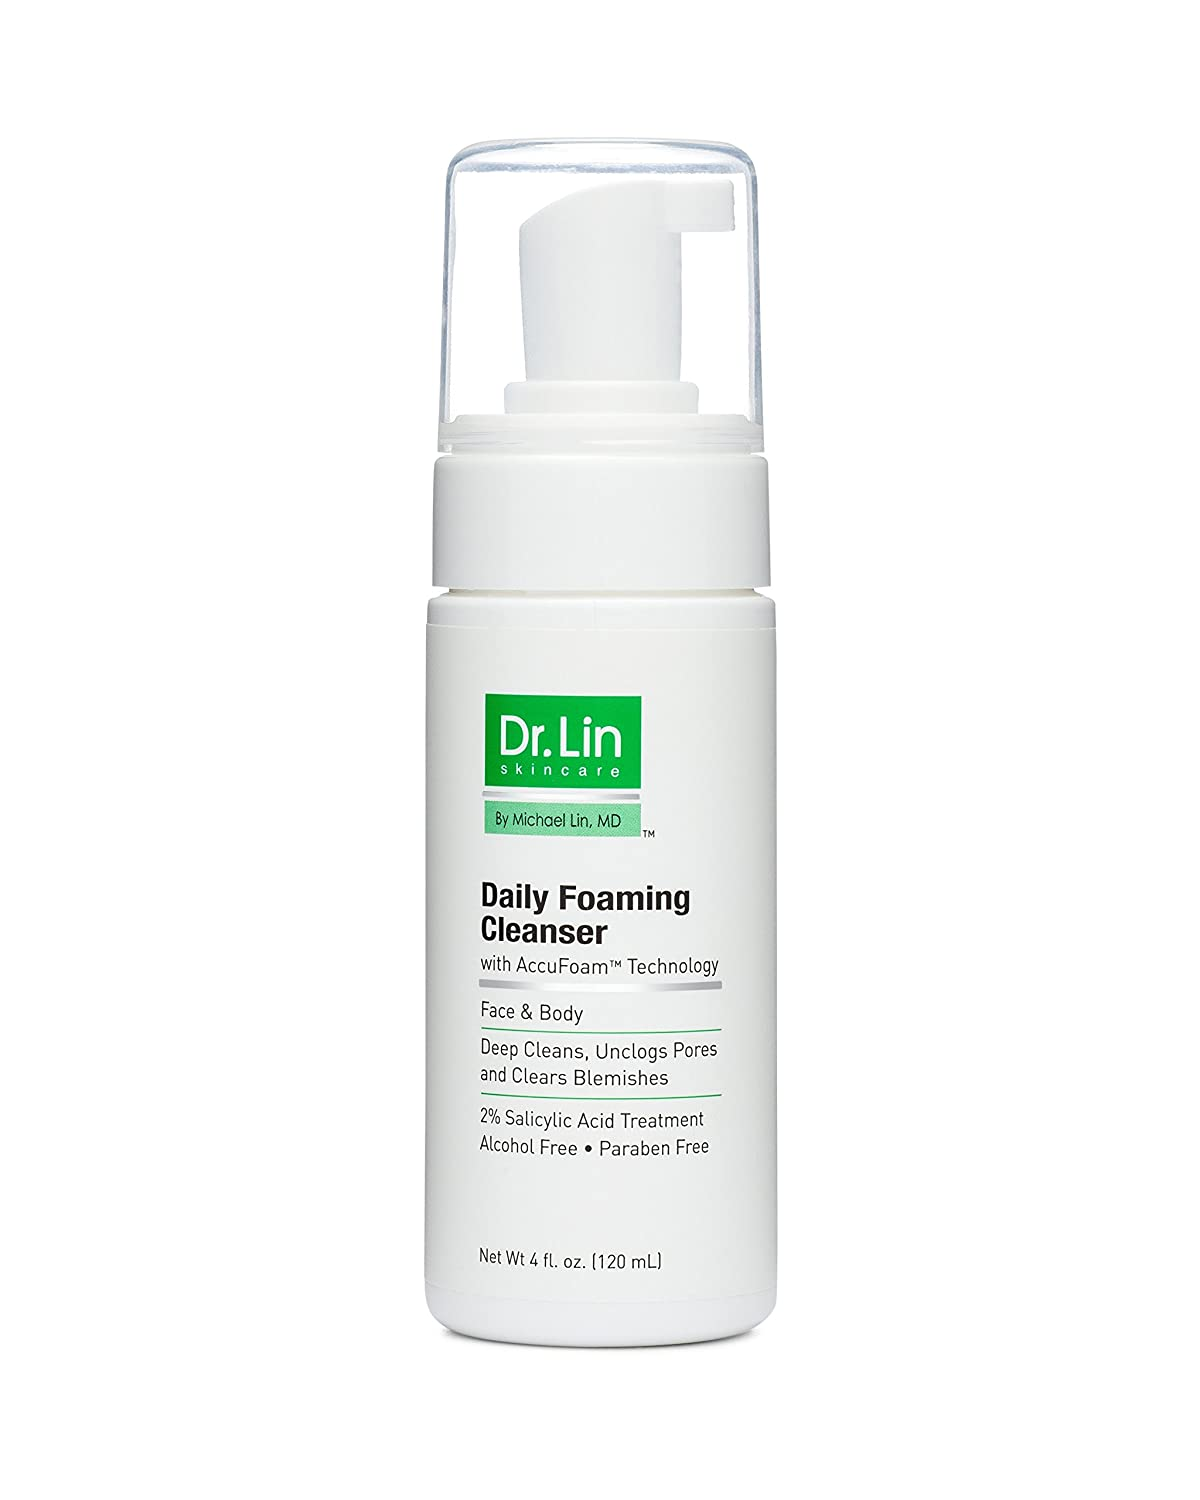 Dr. Lin Skincare Daily Foaming Cleanser - Clears & Prevents Breakouts, Evens Skin Tone & Reduces Acne Scars - Clinical Strength Facial Wash with 2% Salicylic Acid - Formulated by a Dermatologist